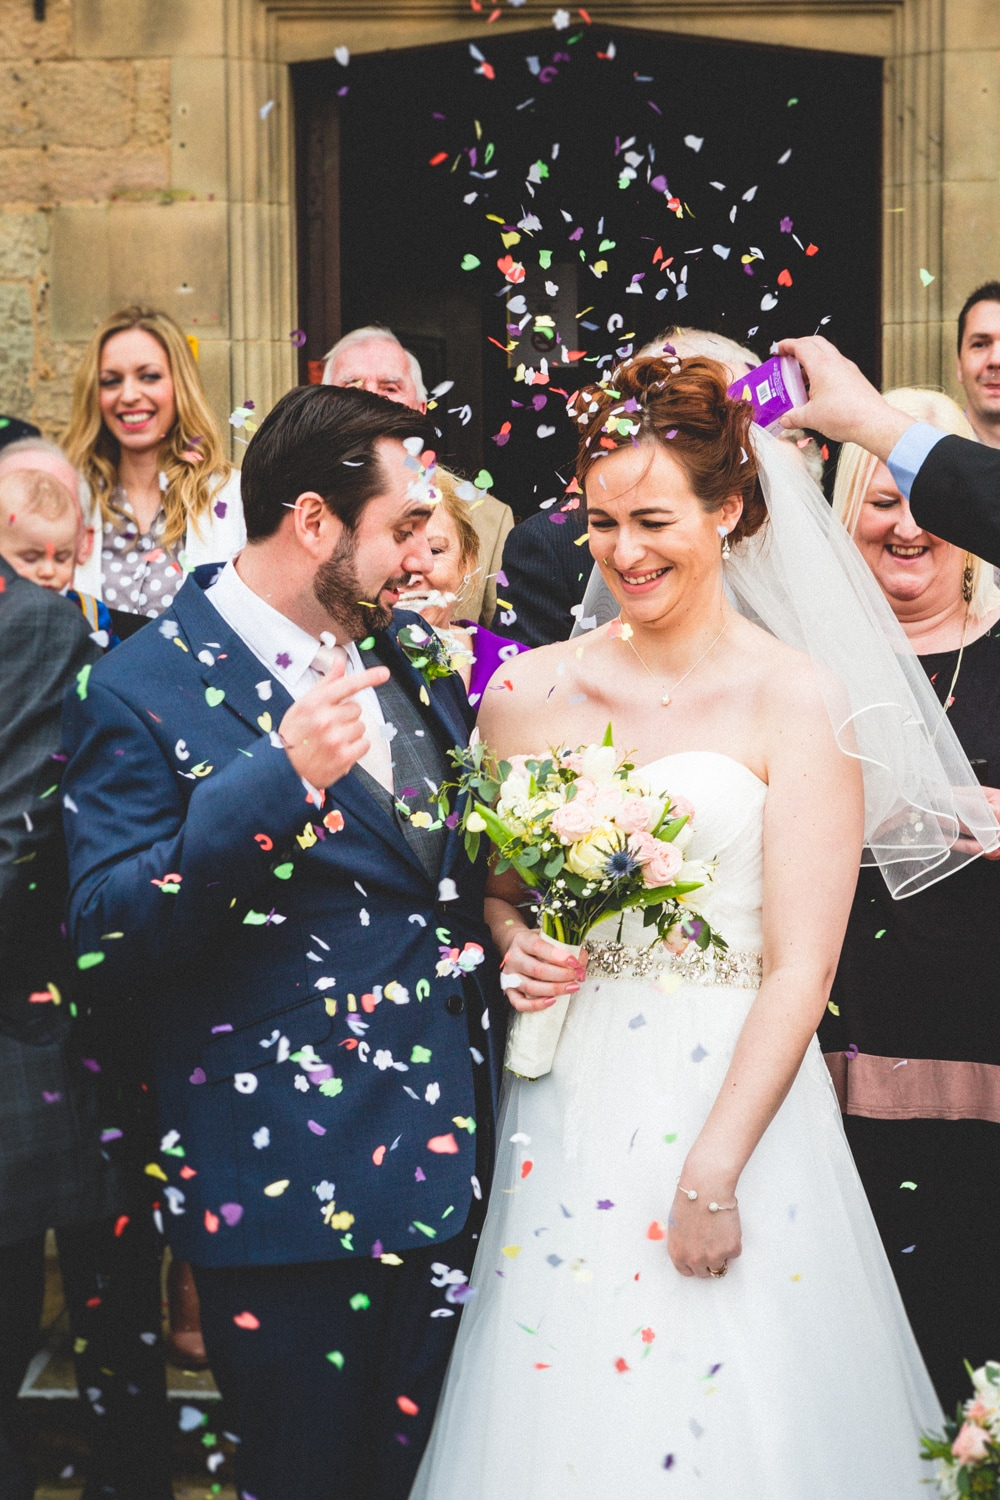 Confetti with the newly married couple - Wedding photography by Yorkshire photographer, Mat Robinson